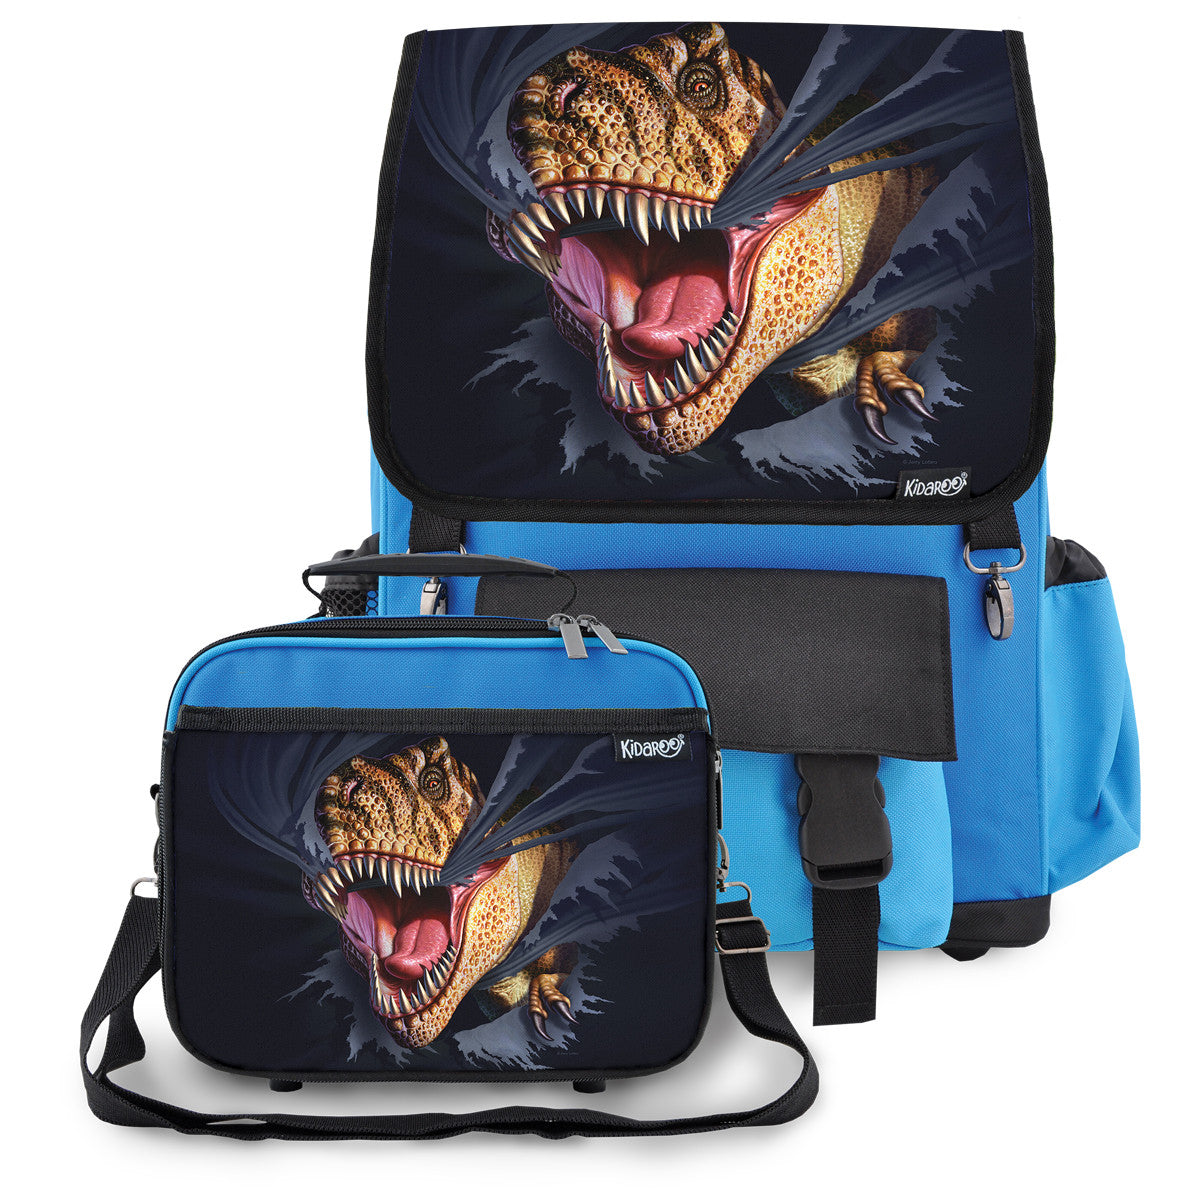 Kidaroo Blue Tearing T-Rex Dinosaur School Backpack & Lunchbox Set for Boys, Girls, Kids